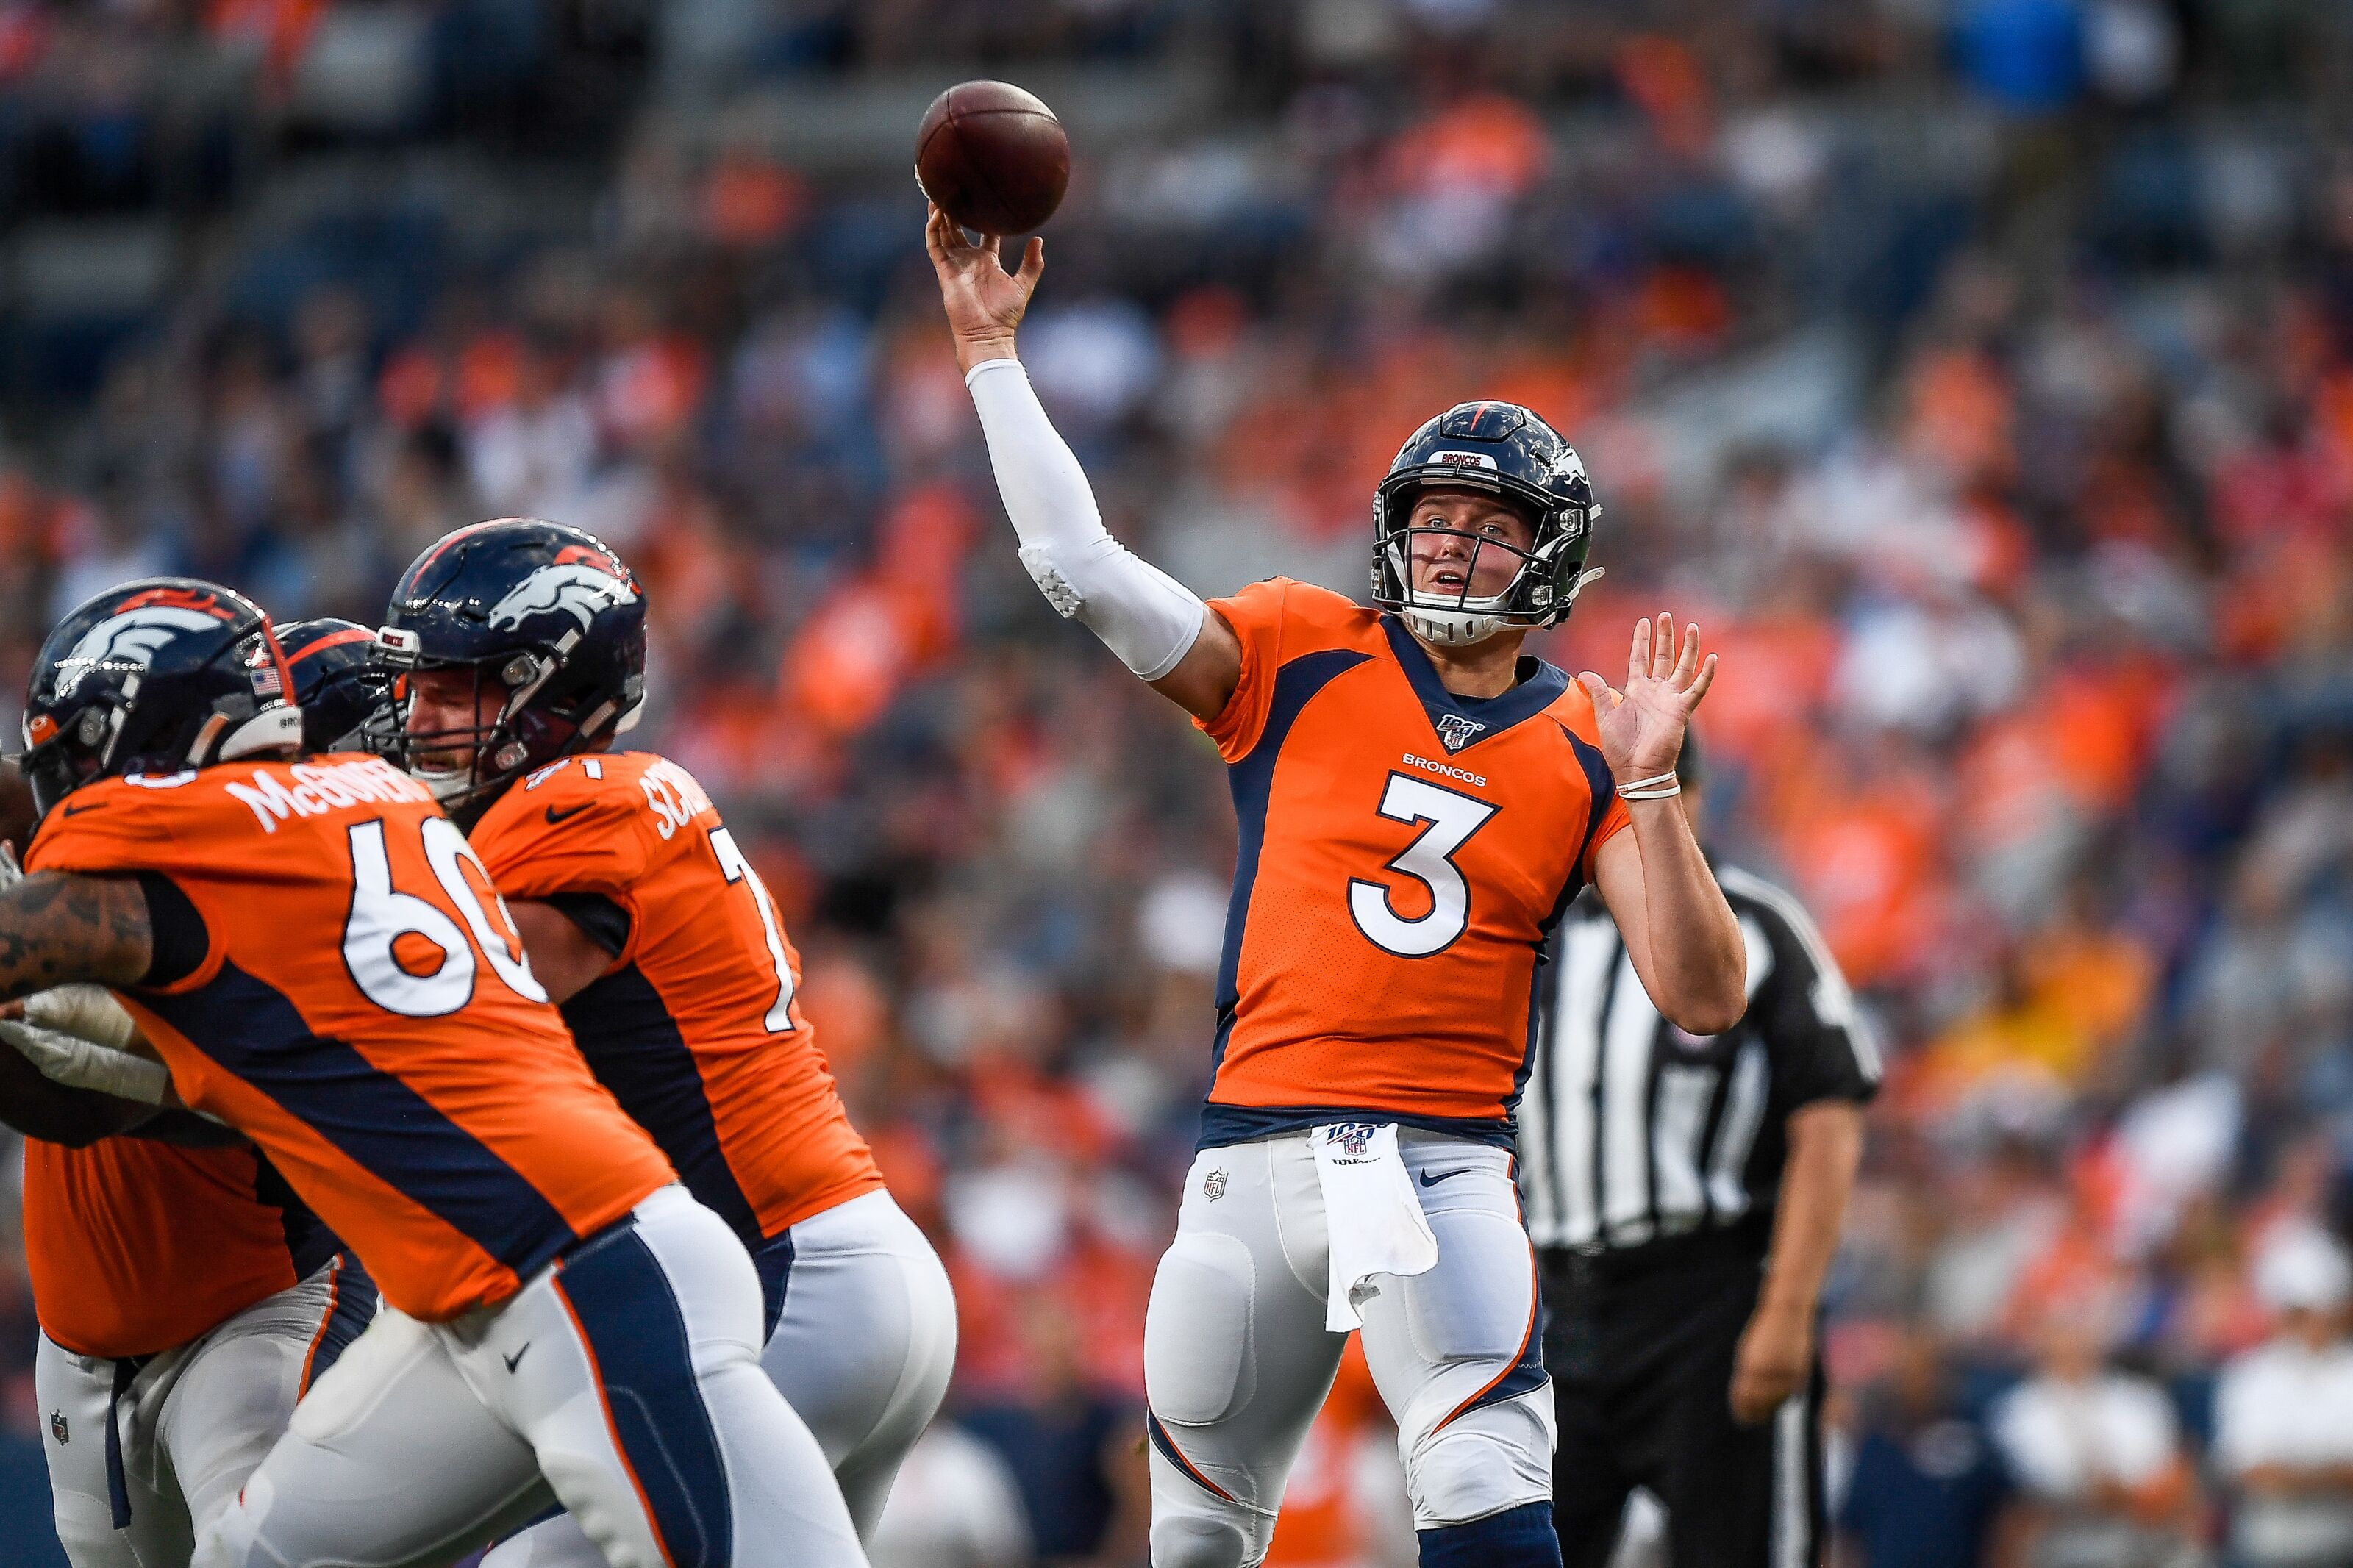 It's Drew Lock time for the Denver Broncos vs. Chargers